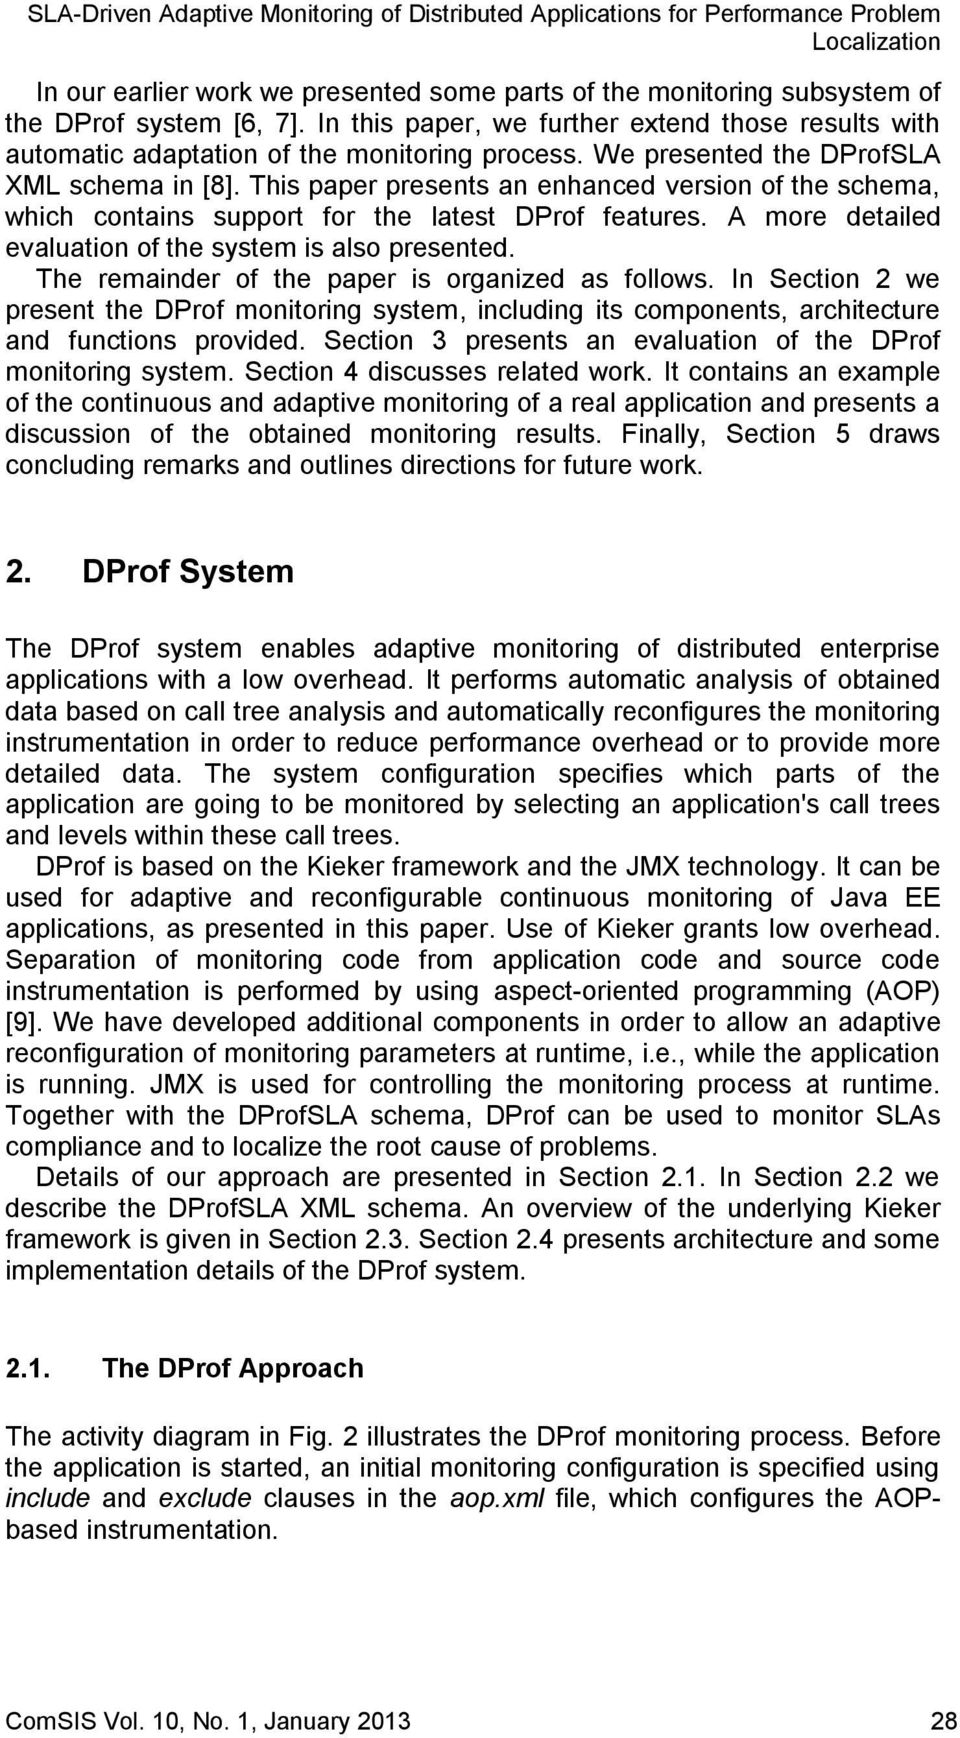 This paper presents an enhanced version of the schema, which contains support for the latest DProf features. A more detailed evaluation of the system is also presented.